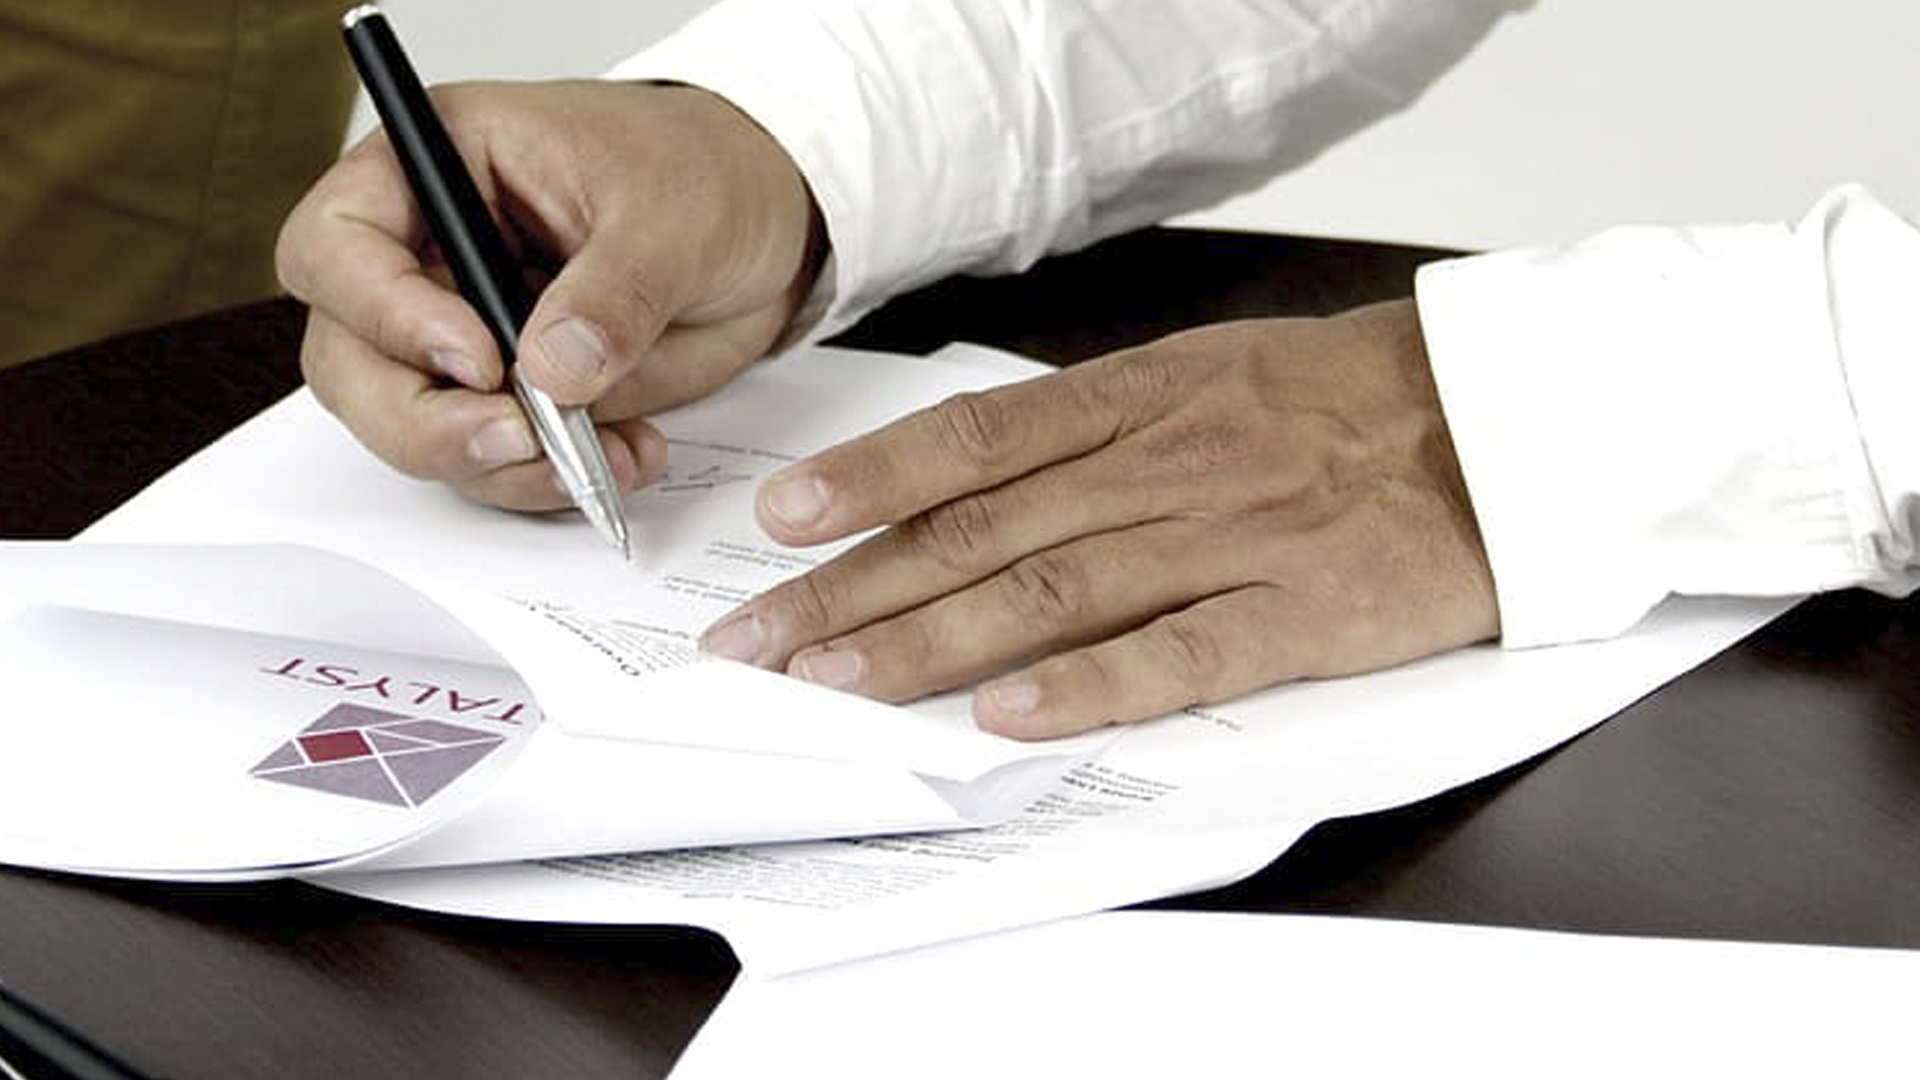 DigiSigner - Legally binding electronic signature solution